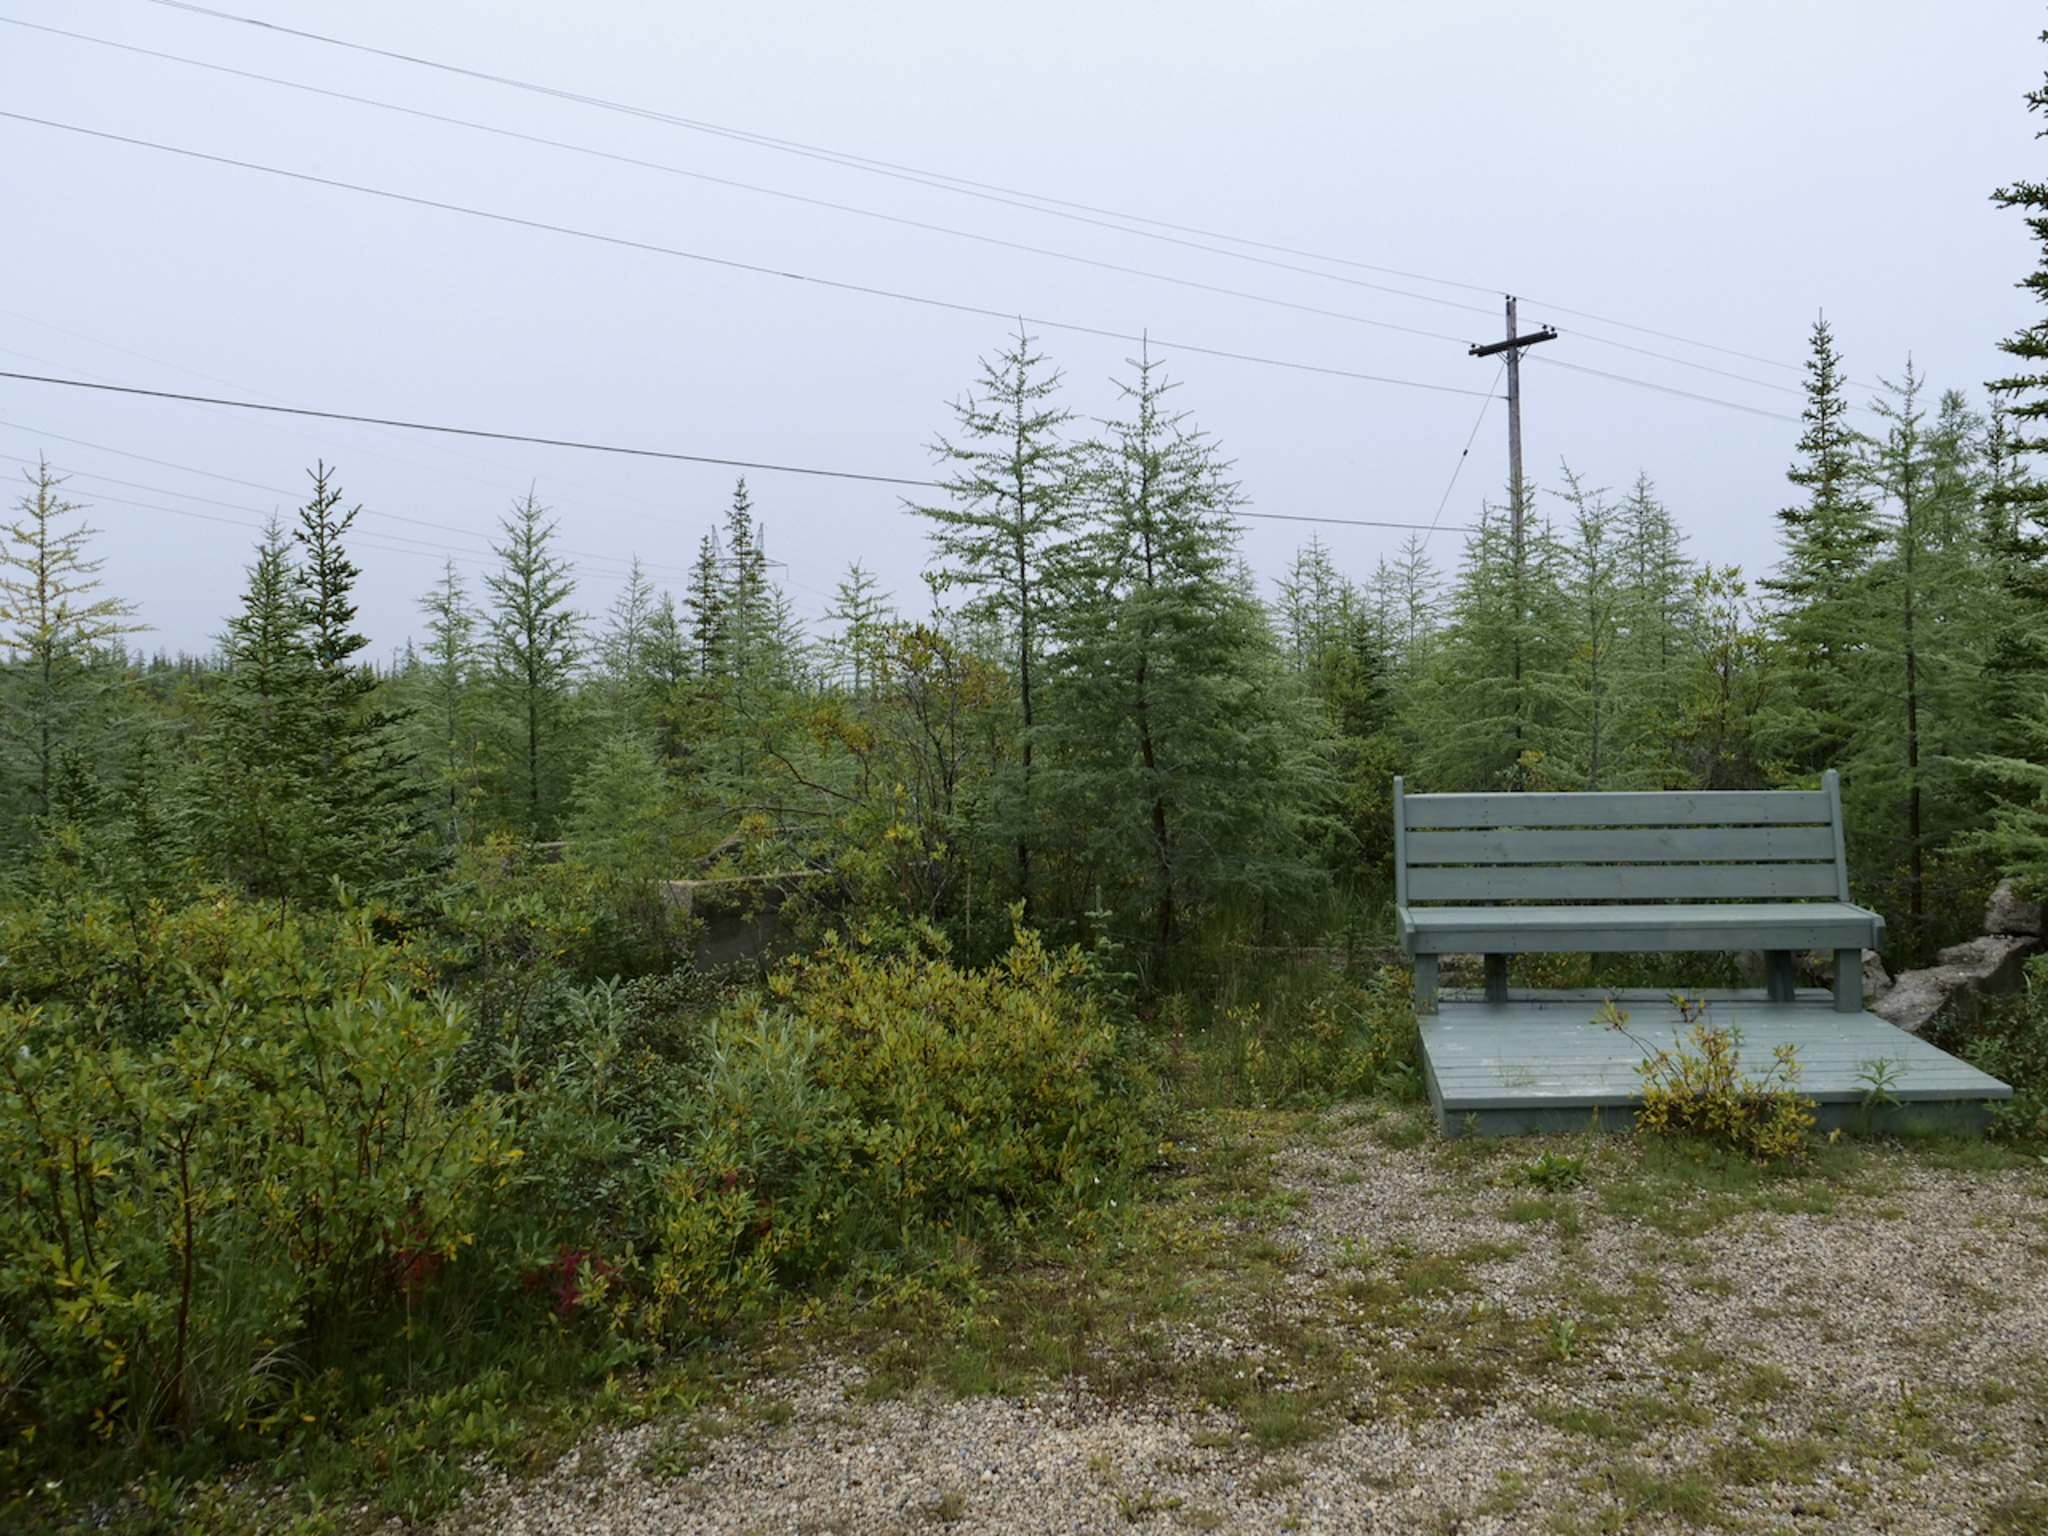 There is little marking the site of Dene Village. A bench sits near the cement foundation of one of the former homes.</p>